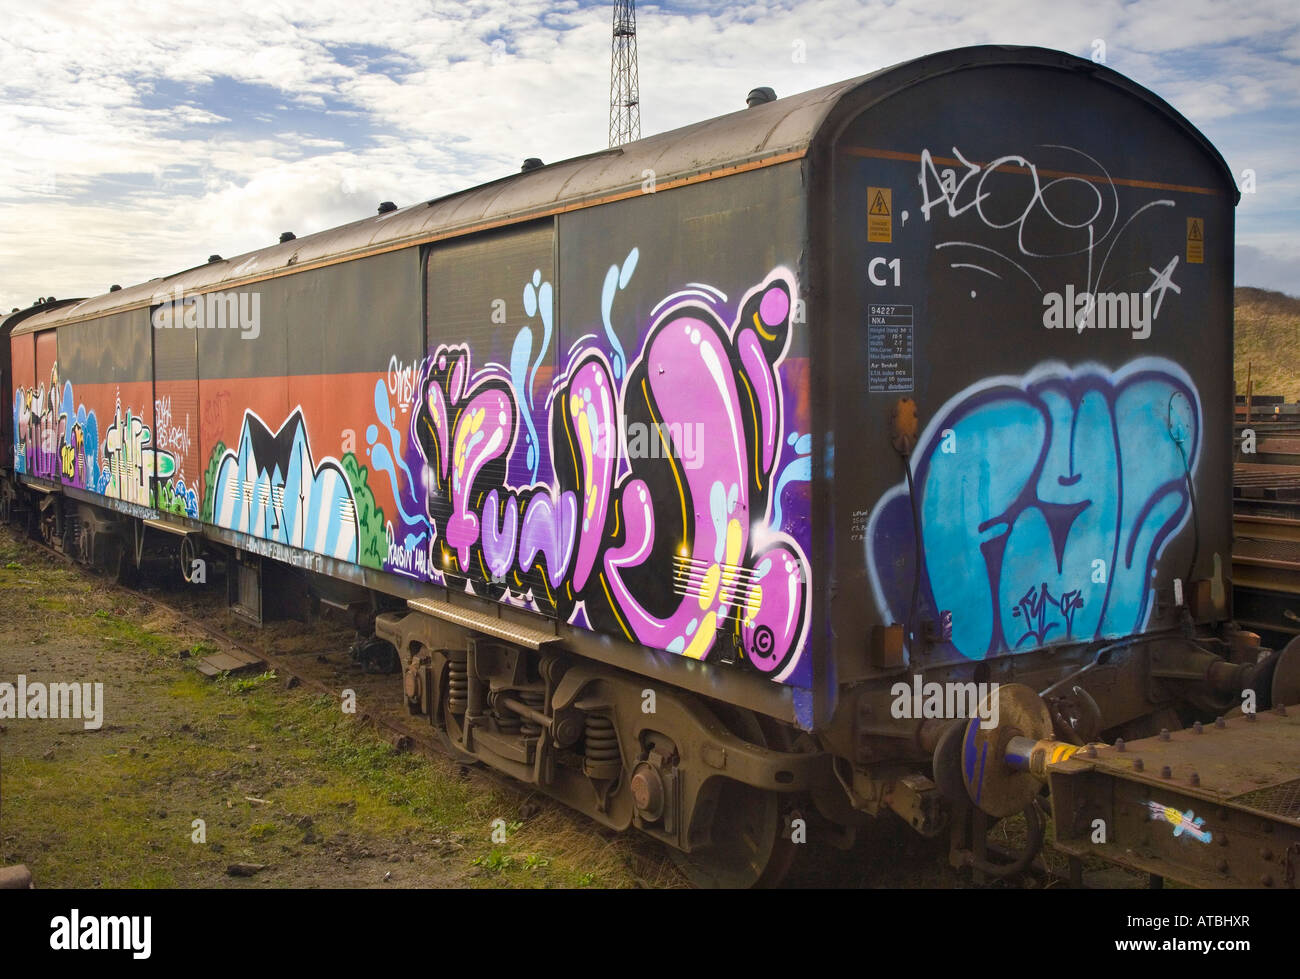 Graffiti subculture painted on trains defaced royal mail railway freight train carriages in siding in